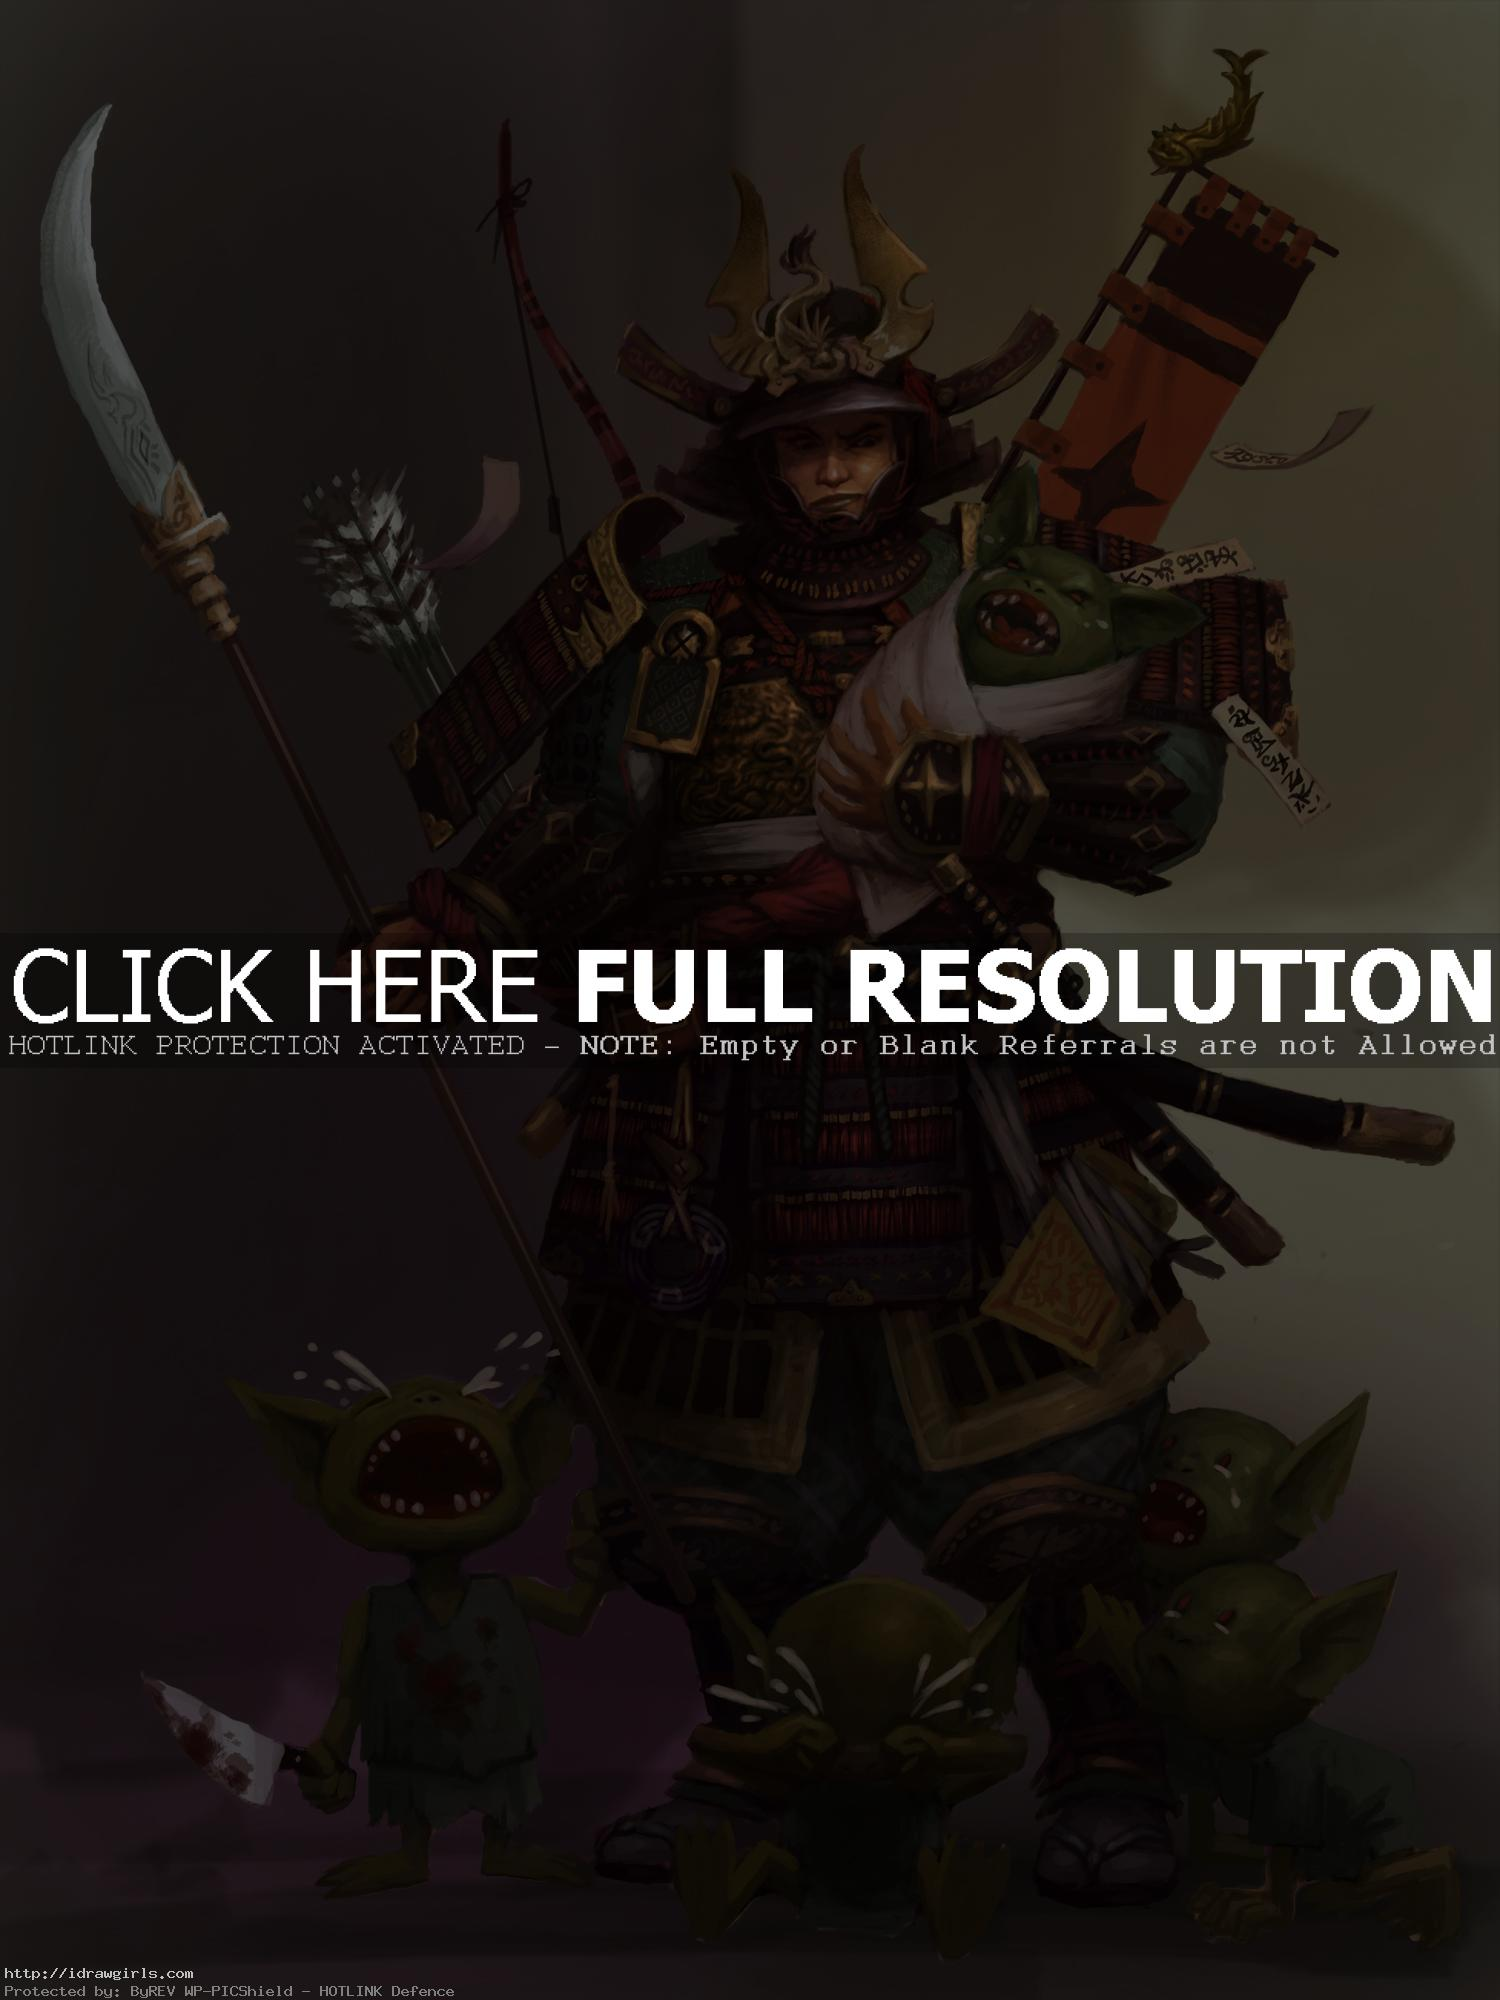 Photoshop digital painting tutorial Samurai character